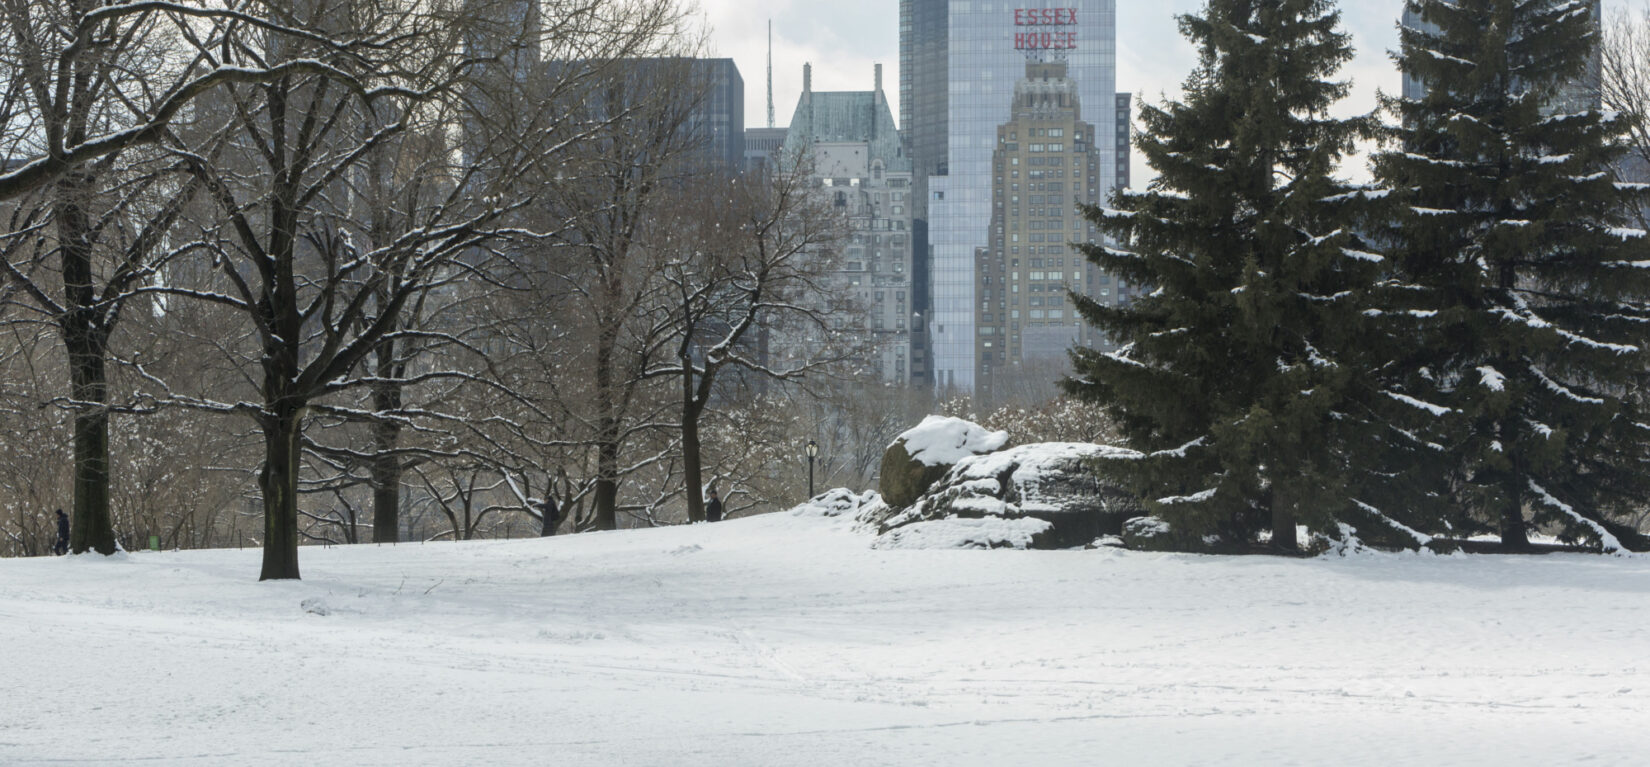 The Park under a blanket of thick snow